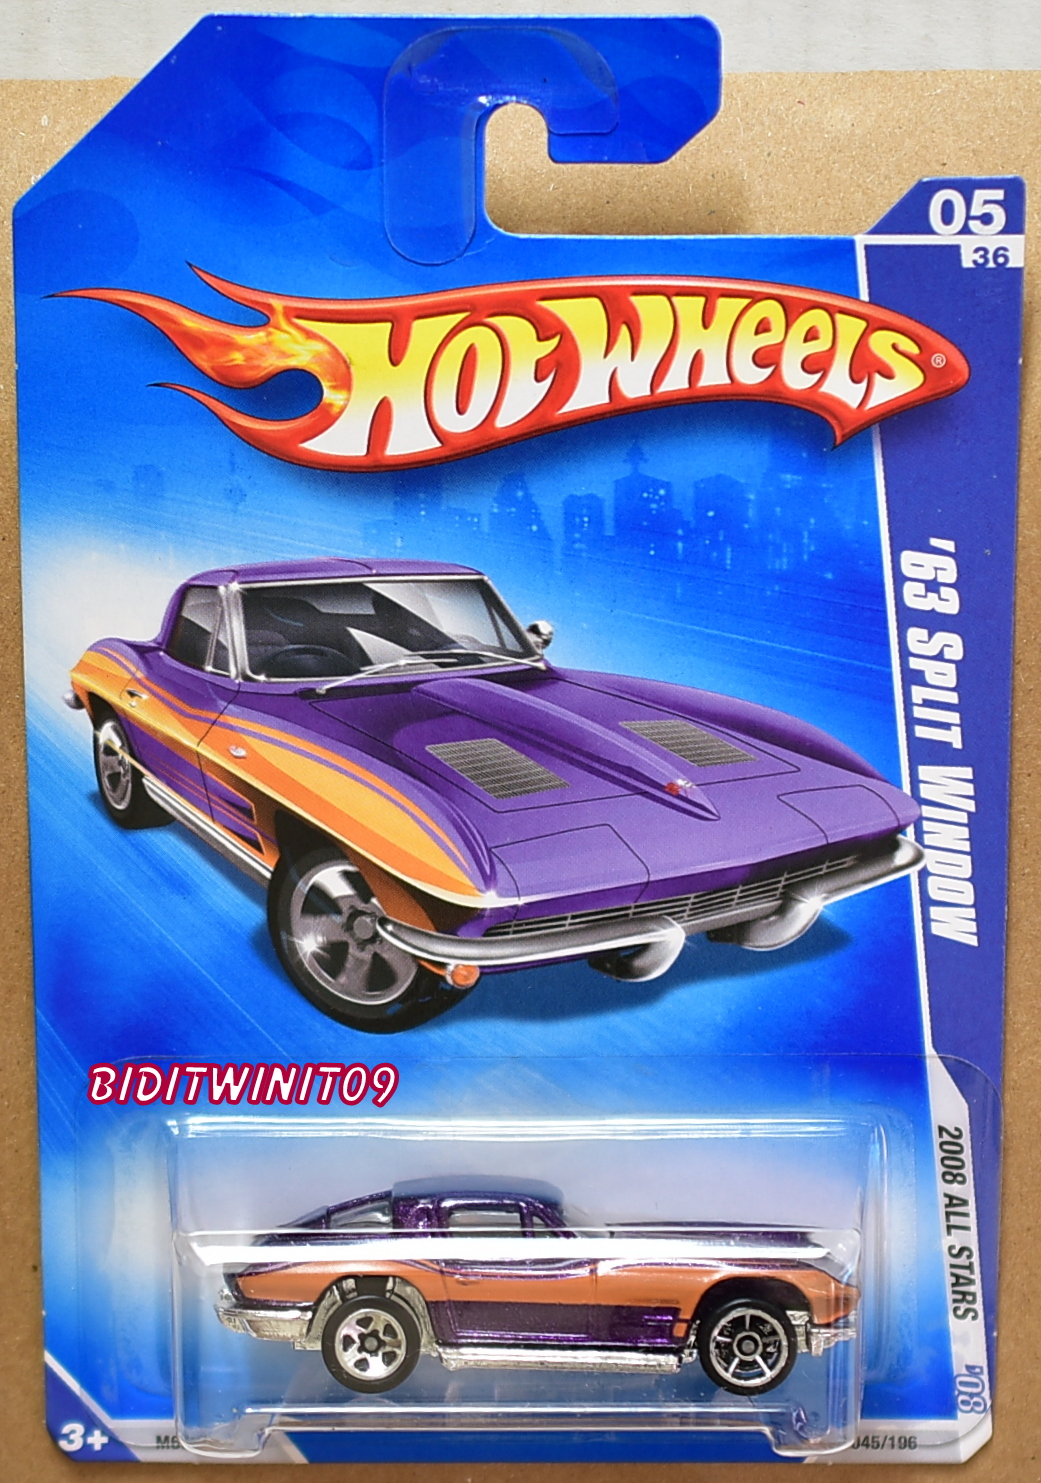 HOT WHEELS 2008 ALL STARS '63 SPLIT WINDOW PURPLE WHEELS ERROR E+